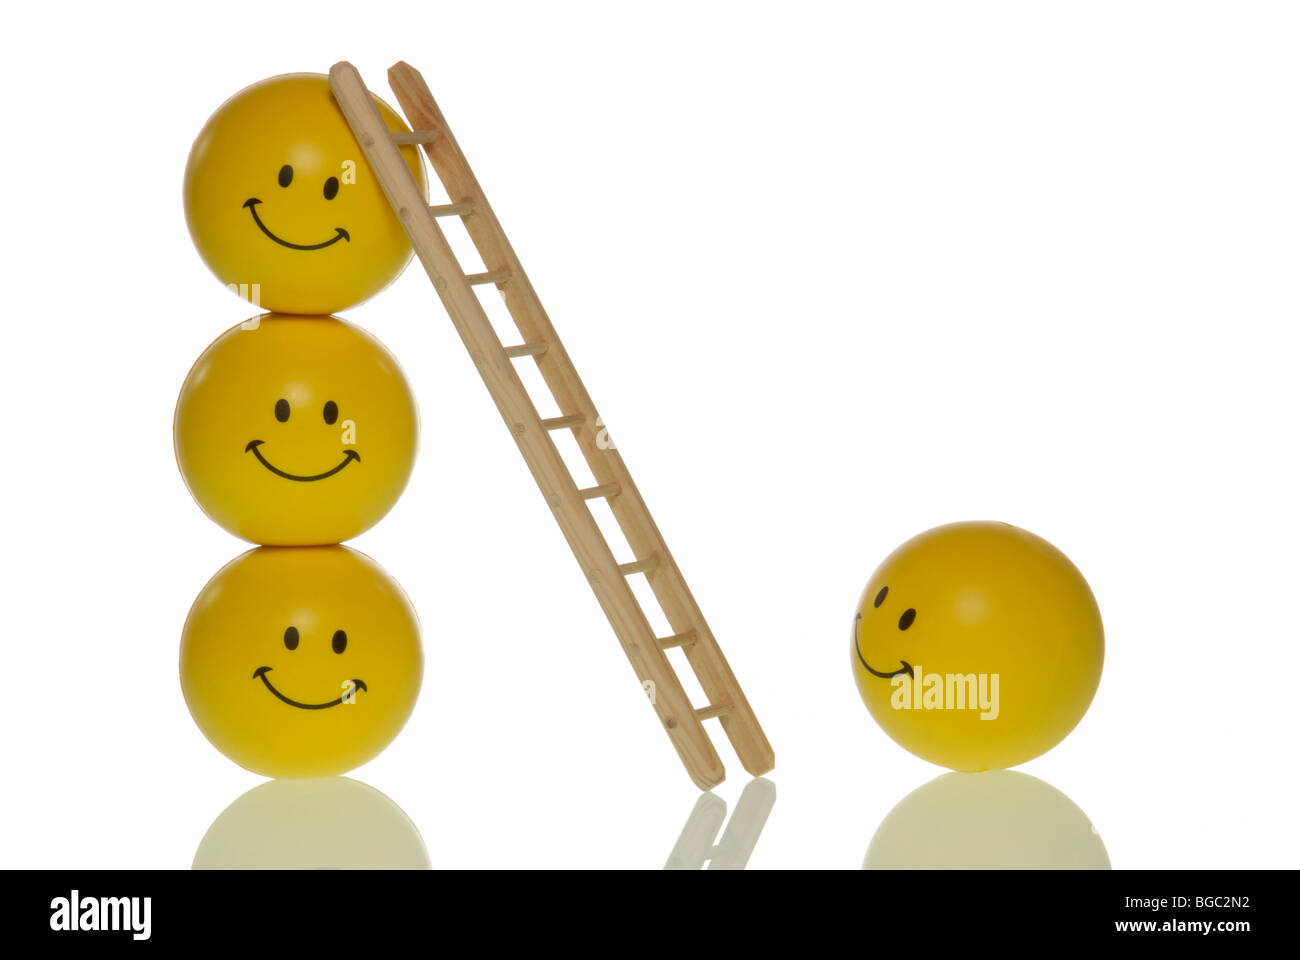 Smiley has the chance to rise to the top, symbolic image for success ladder - Stock Image